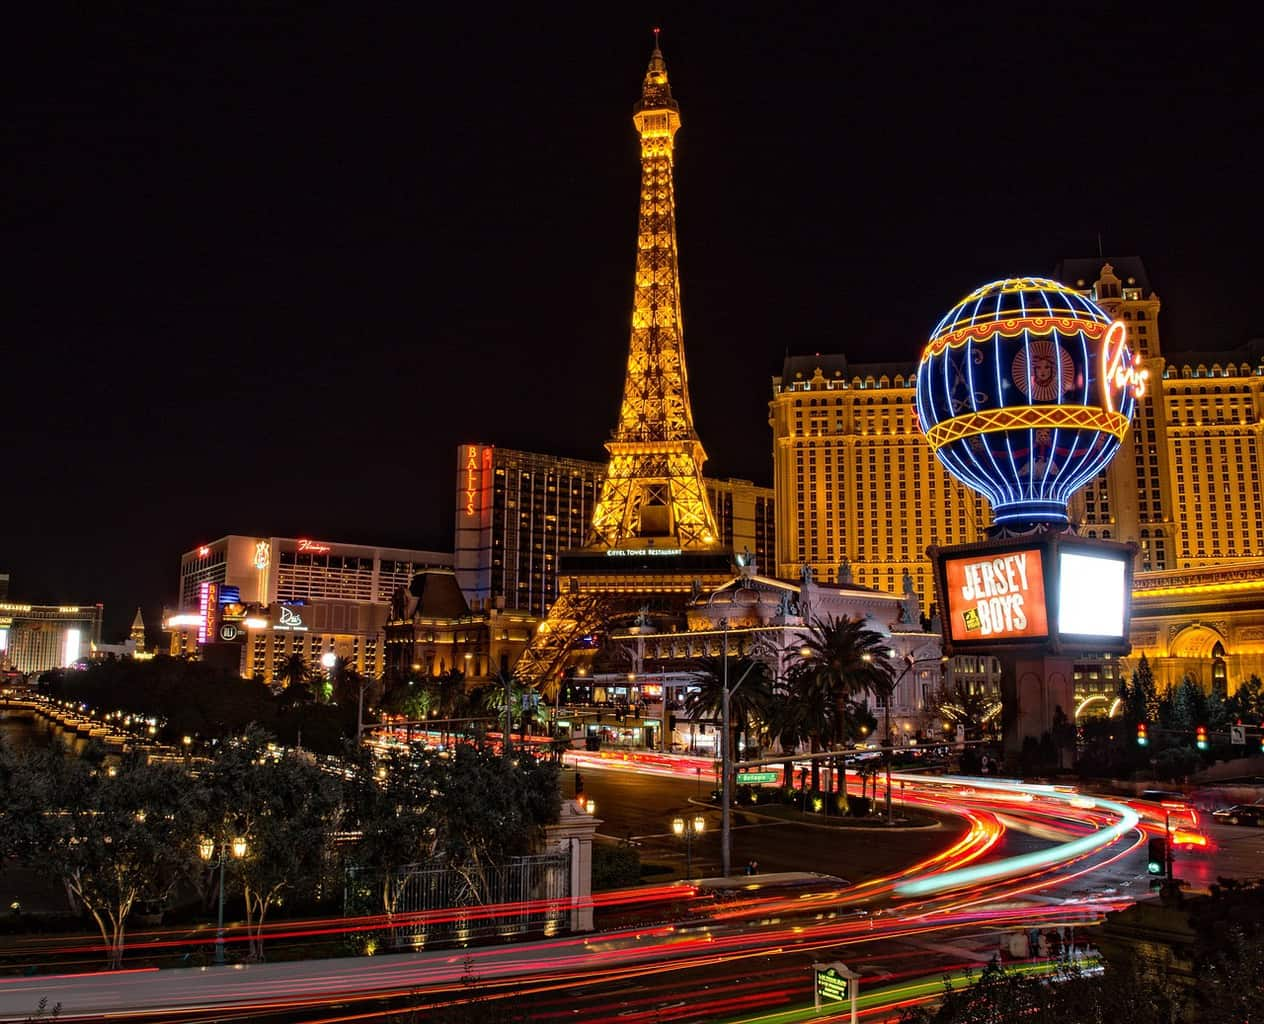 The 10 Worst Hotels to Avoid in Las Vegas